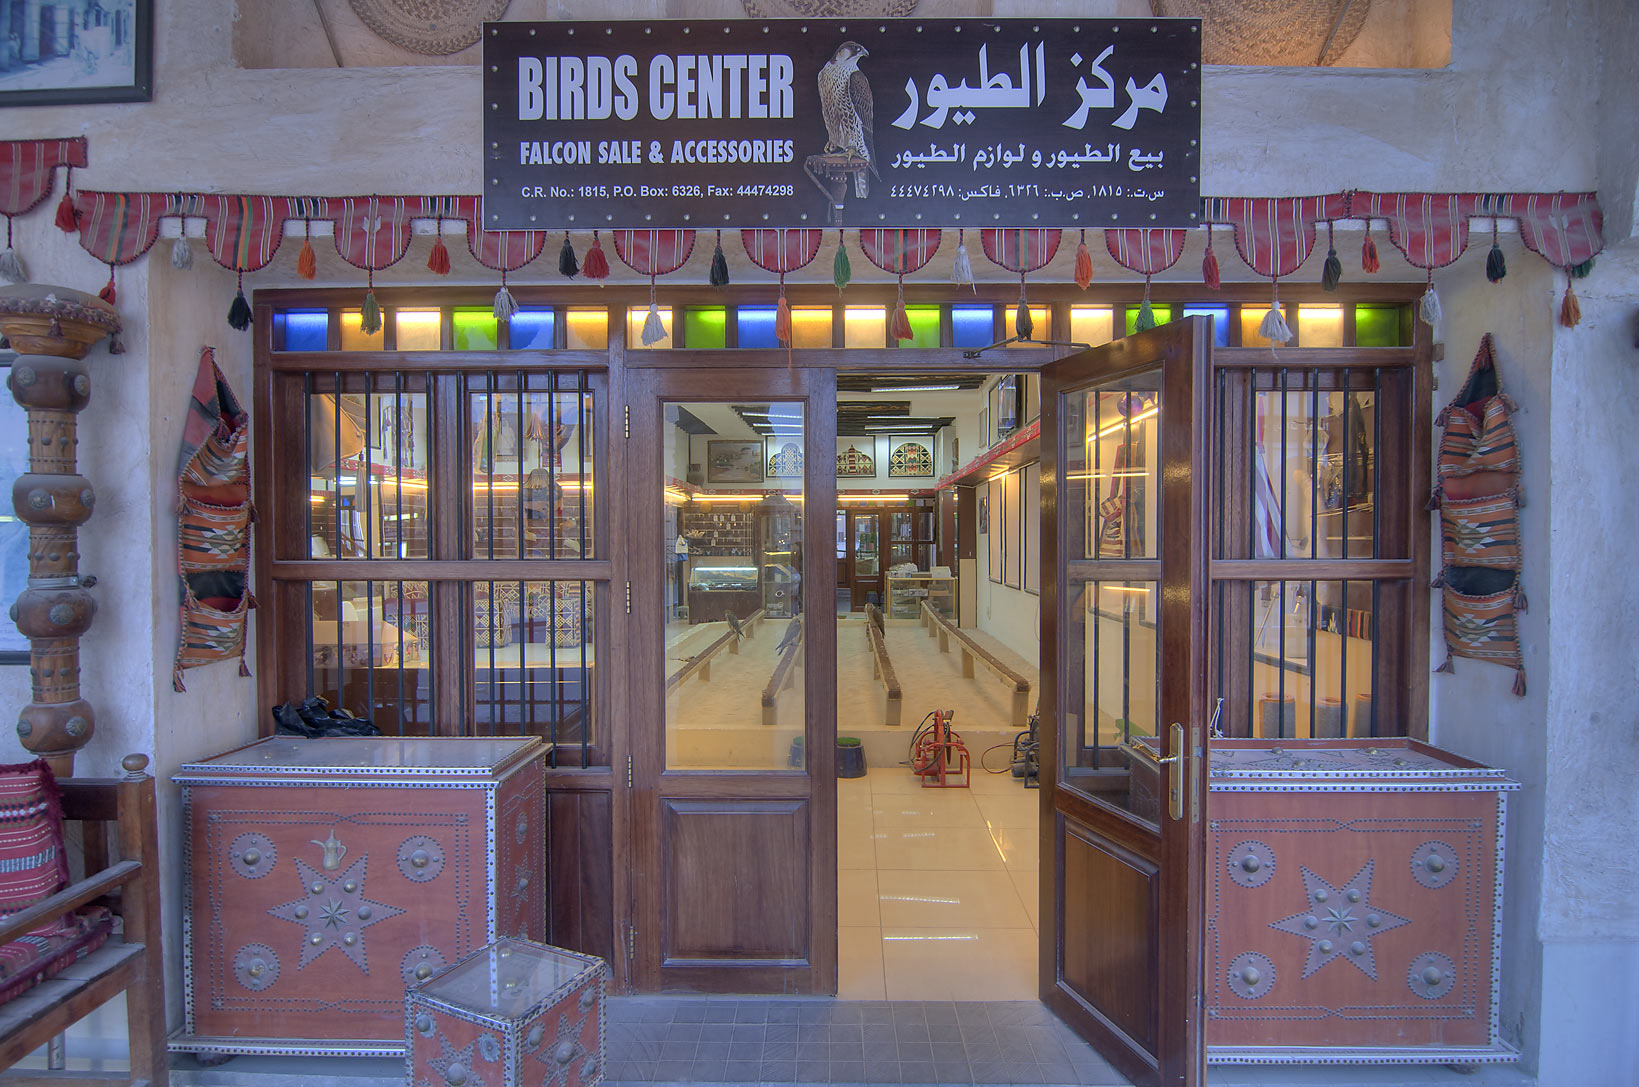 Birds Center (falcon sale and accessories) in...Souq Waqif (Old Market). Doha, Qatar